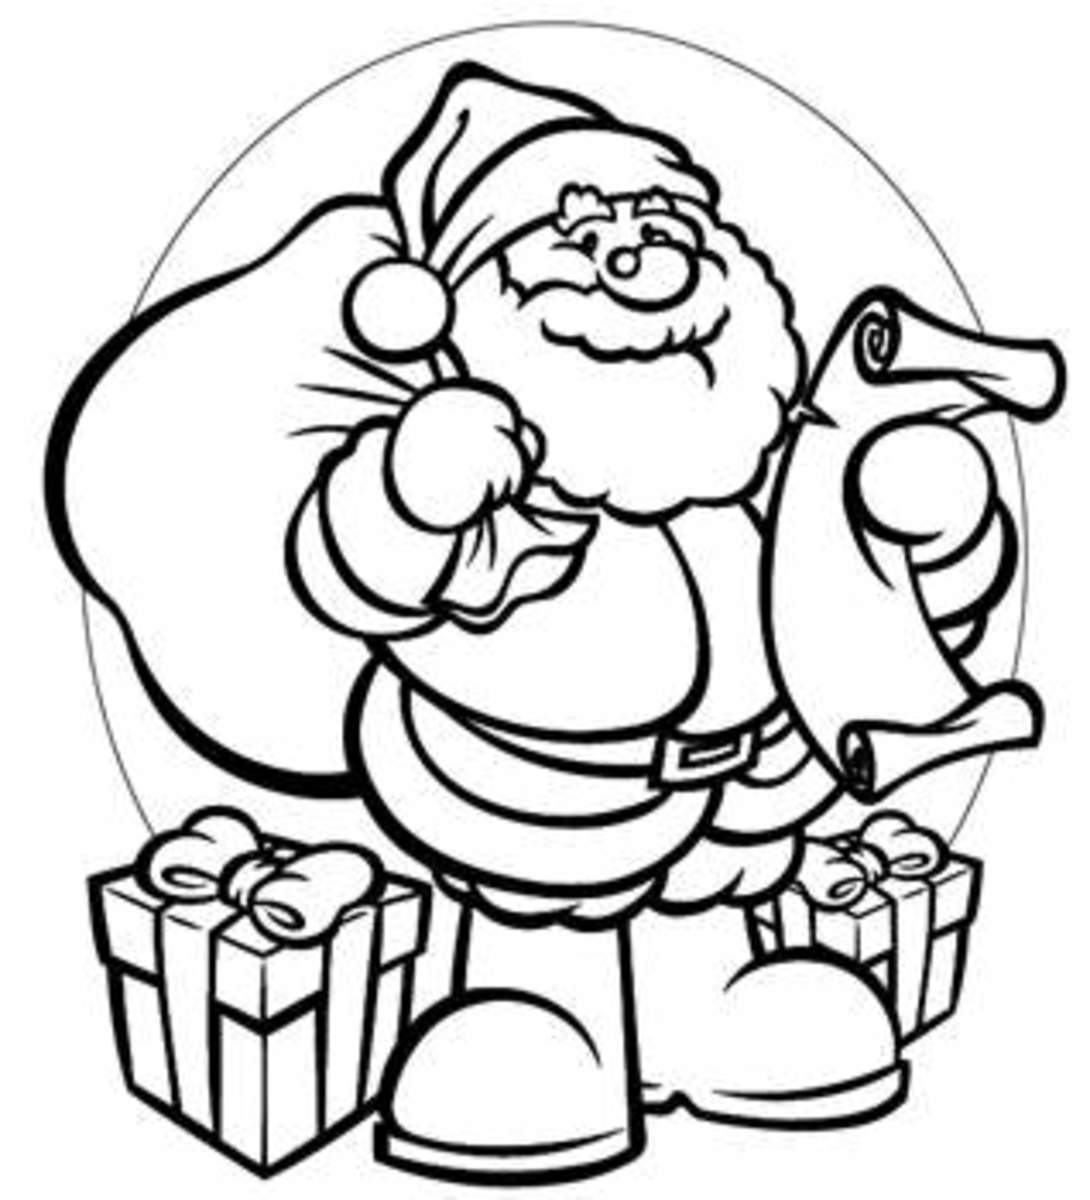 santa christmas coloring pages - photo#28